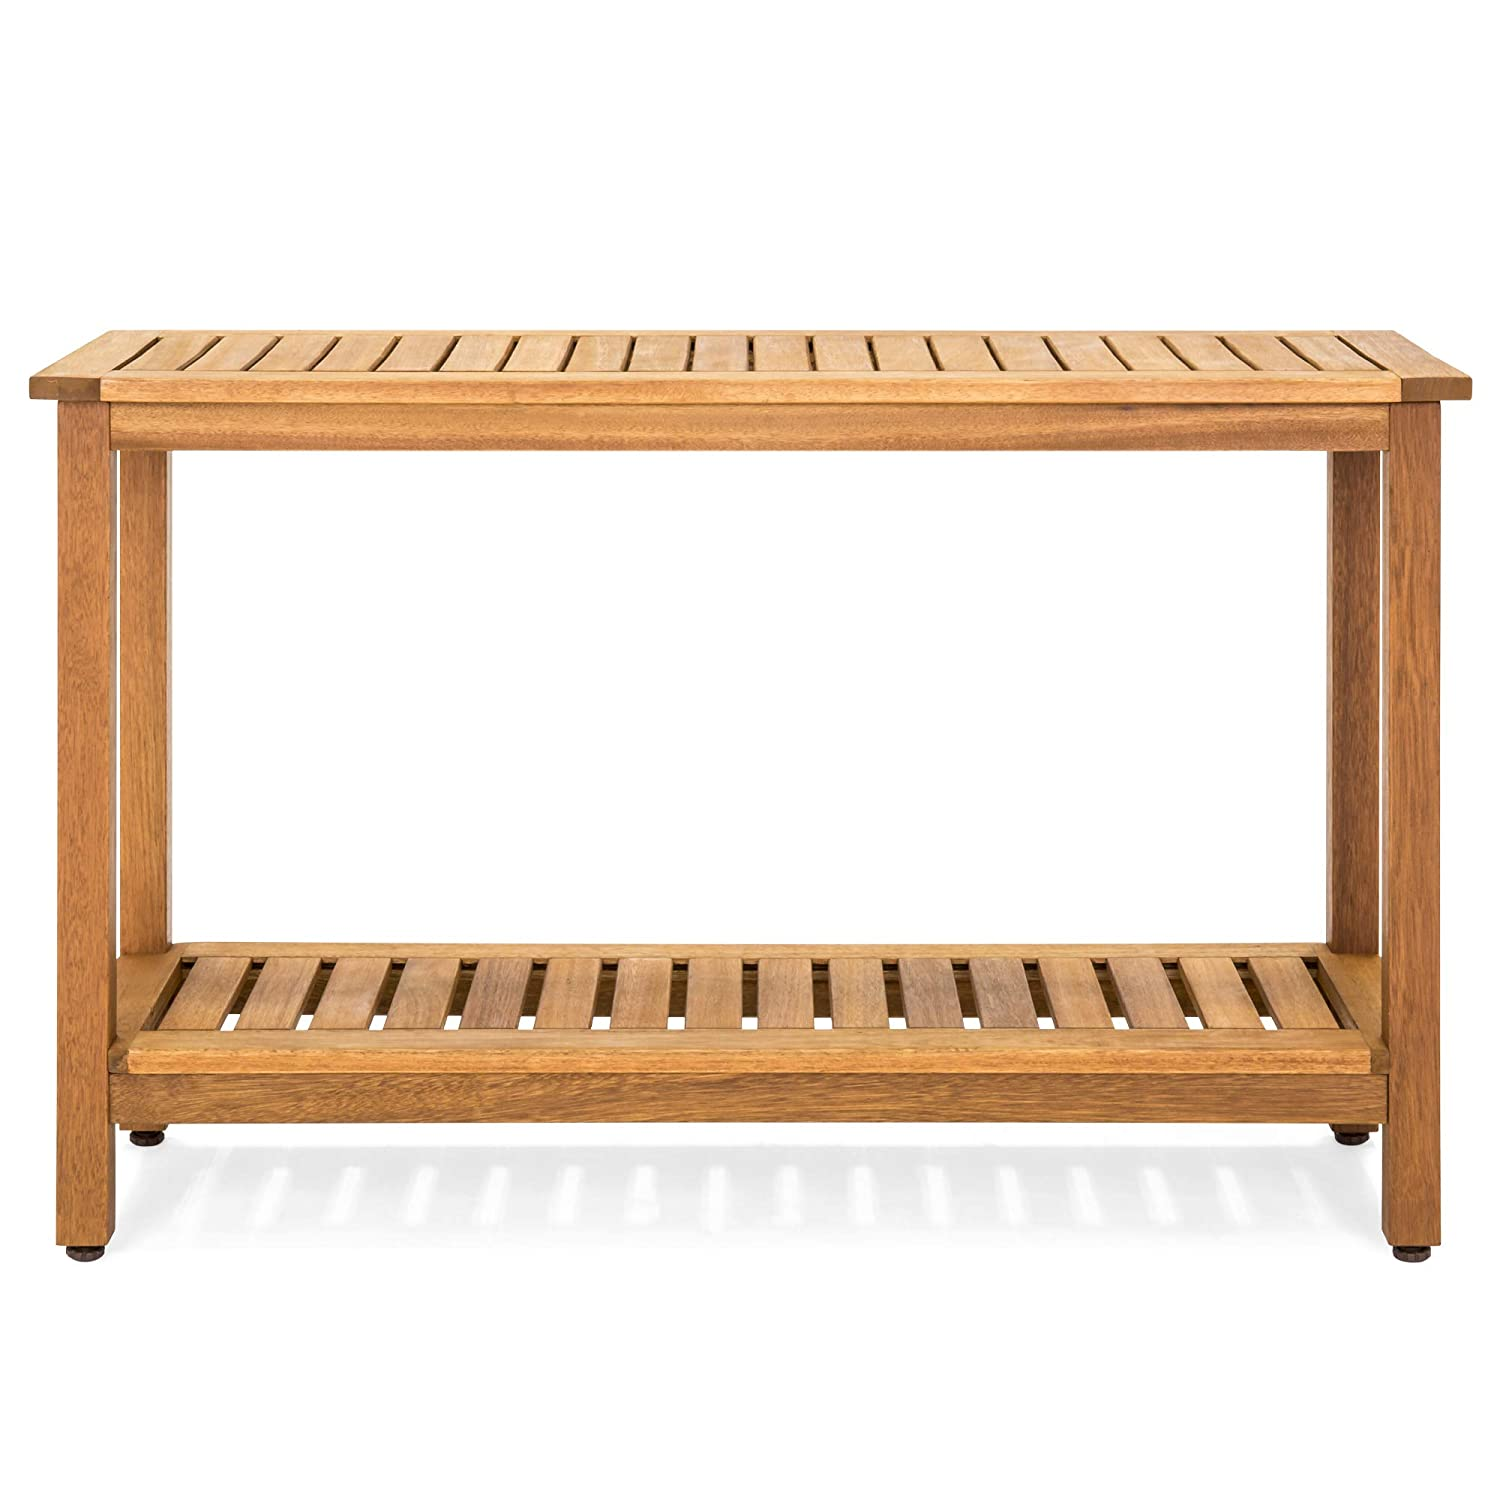 Strange Best Choice Products 48 Inch 2 Shelf Indoor Outdoor Multifunctional Eucalyptus Wood Buffet Bar Storage Console Table Organizer Natural Home Interior And Landscaping Ologienasavecom